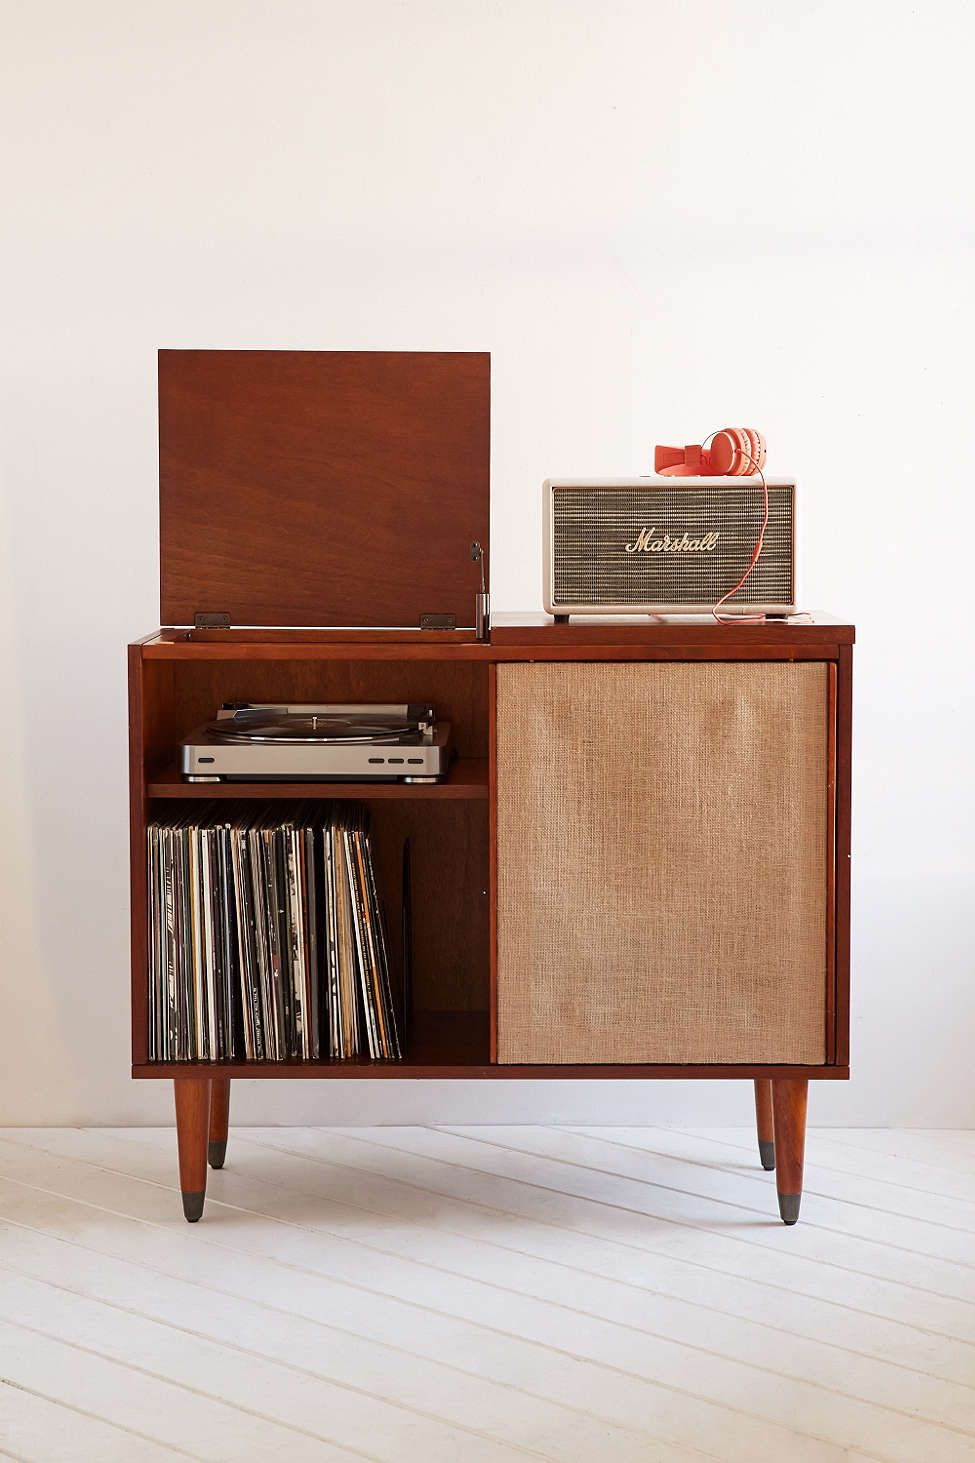 Meuble Vynil Draper Media Console Urban Outfitters Dreamhouse Meubel